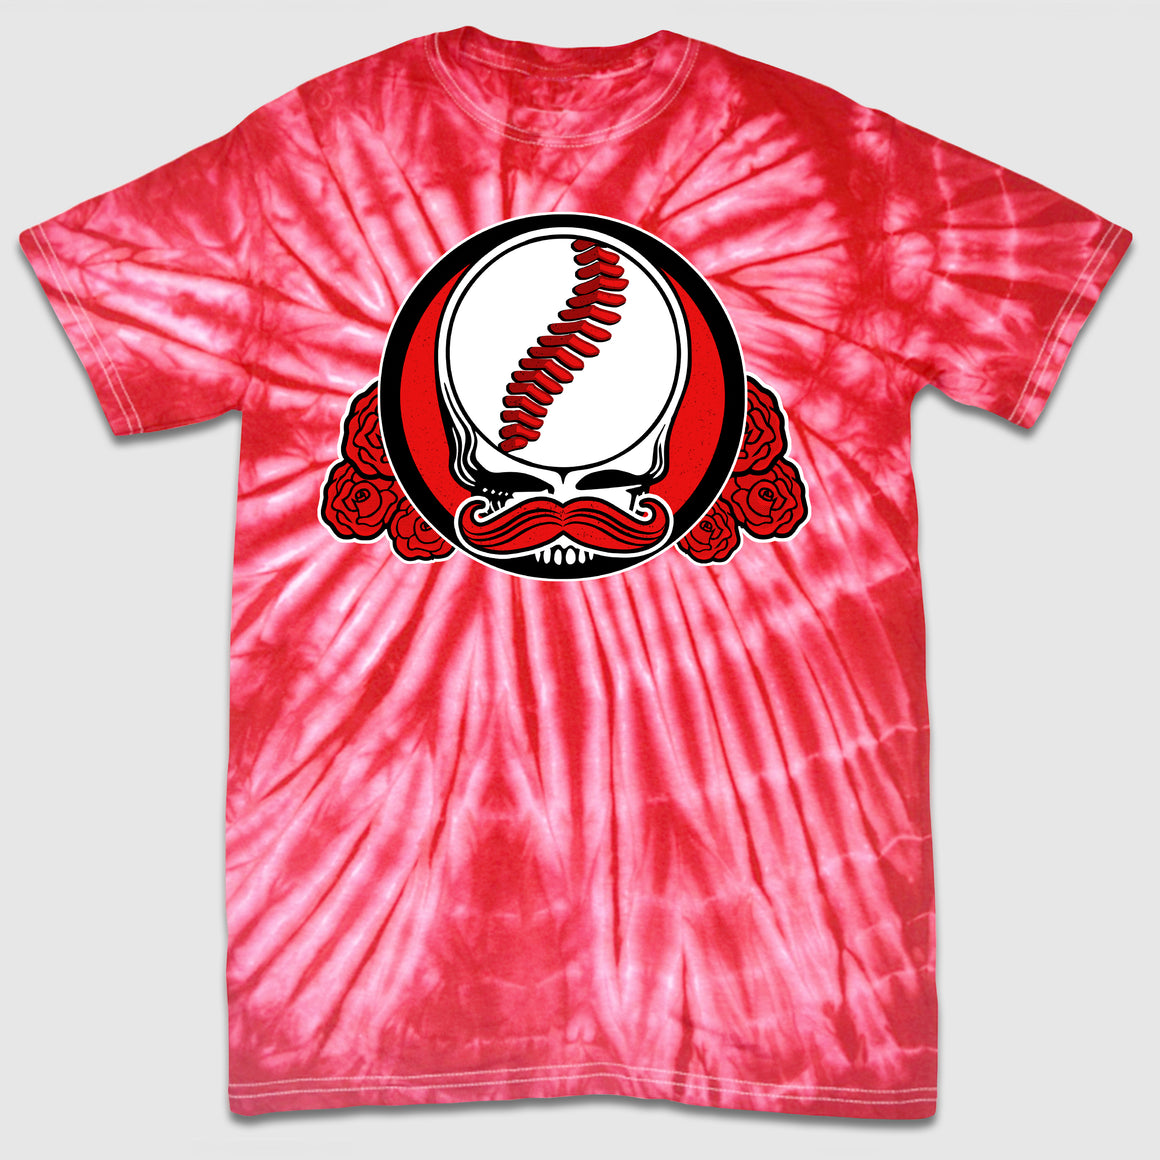 Mr. Dead Red - Cincy Baseball Tie-Dye Tee - Cincy Shirts